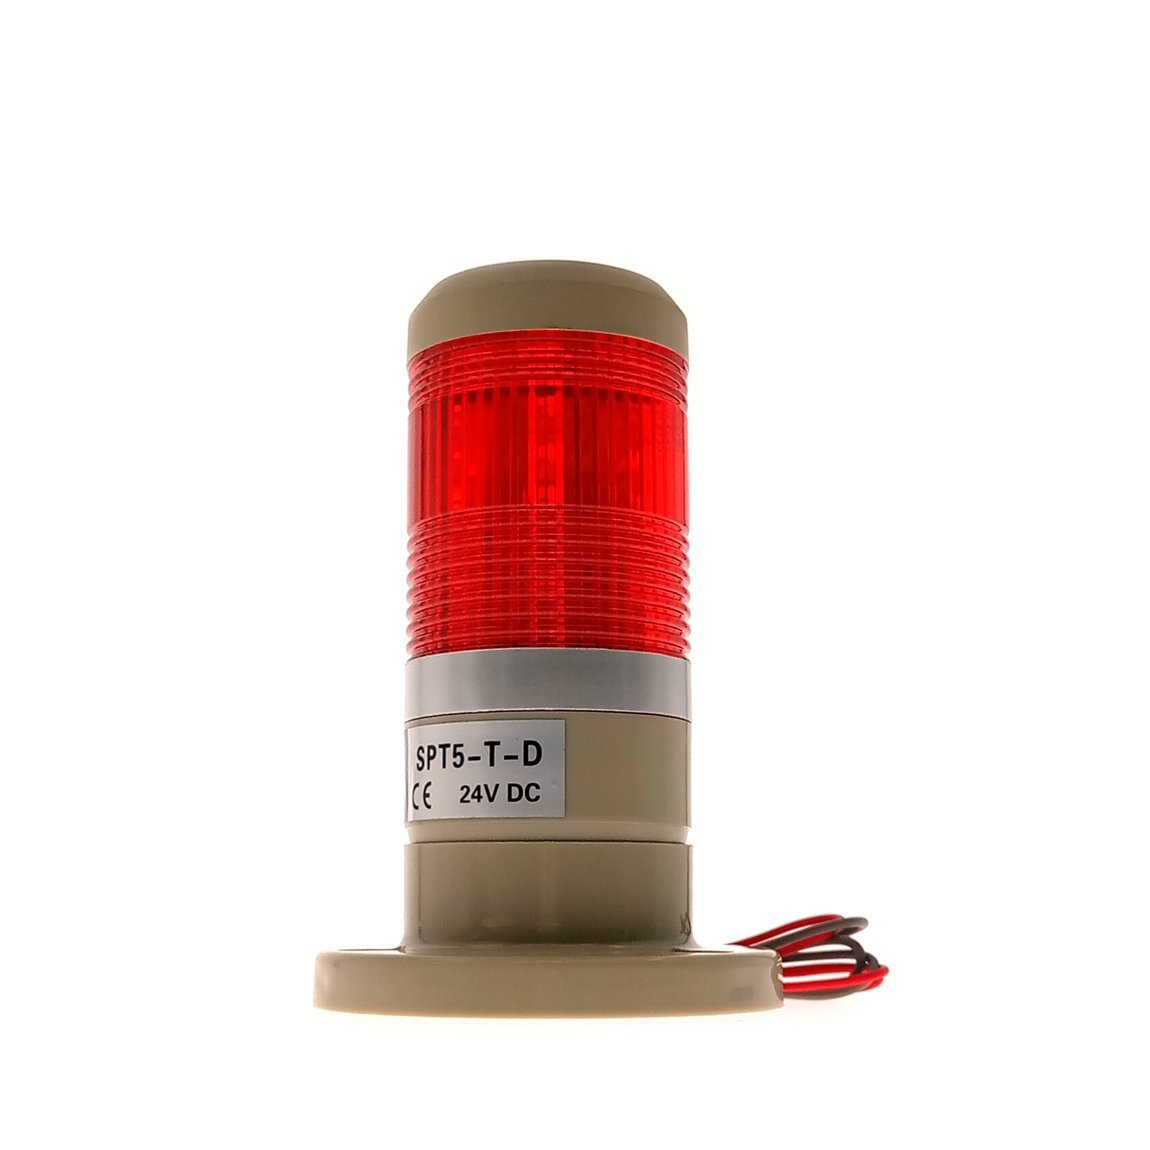 YXQ Industrial Signal Red Light DC 24V Safety Warning Tower Bulb Indicator Lamp(SPT5-T-D) by YXQ